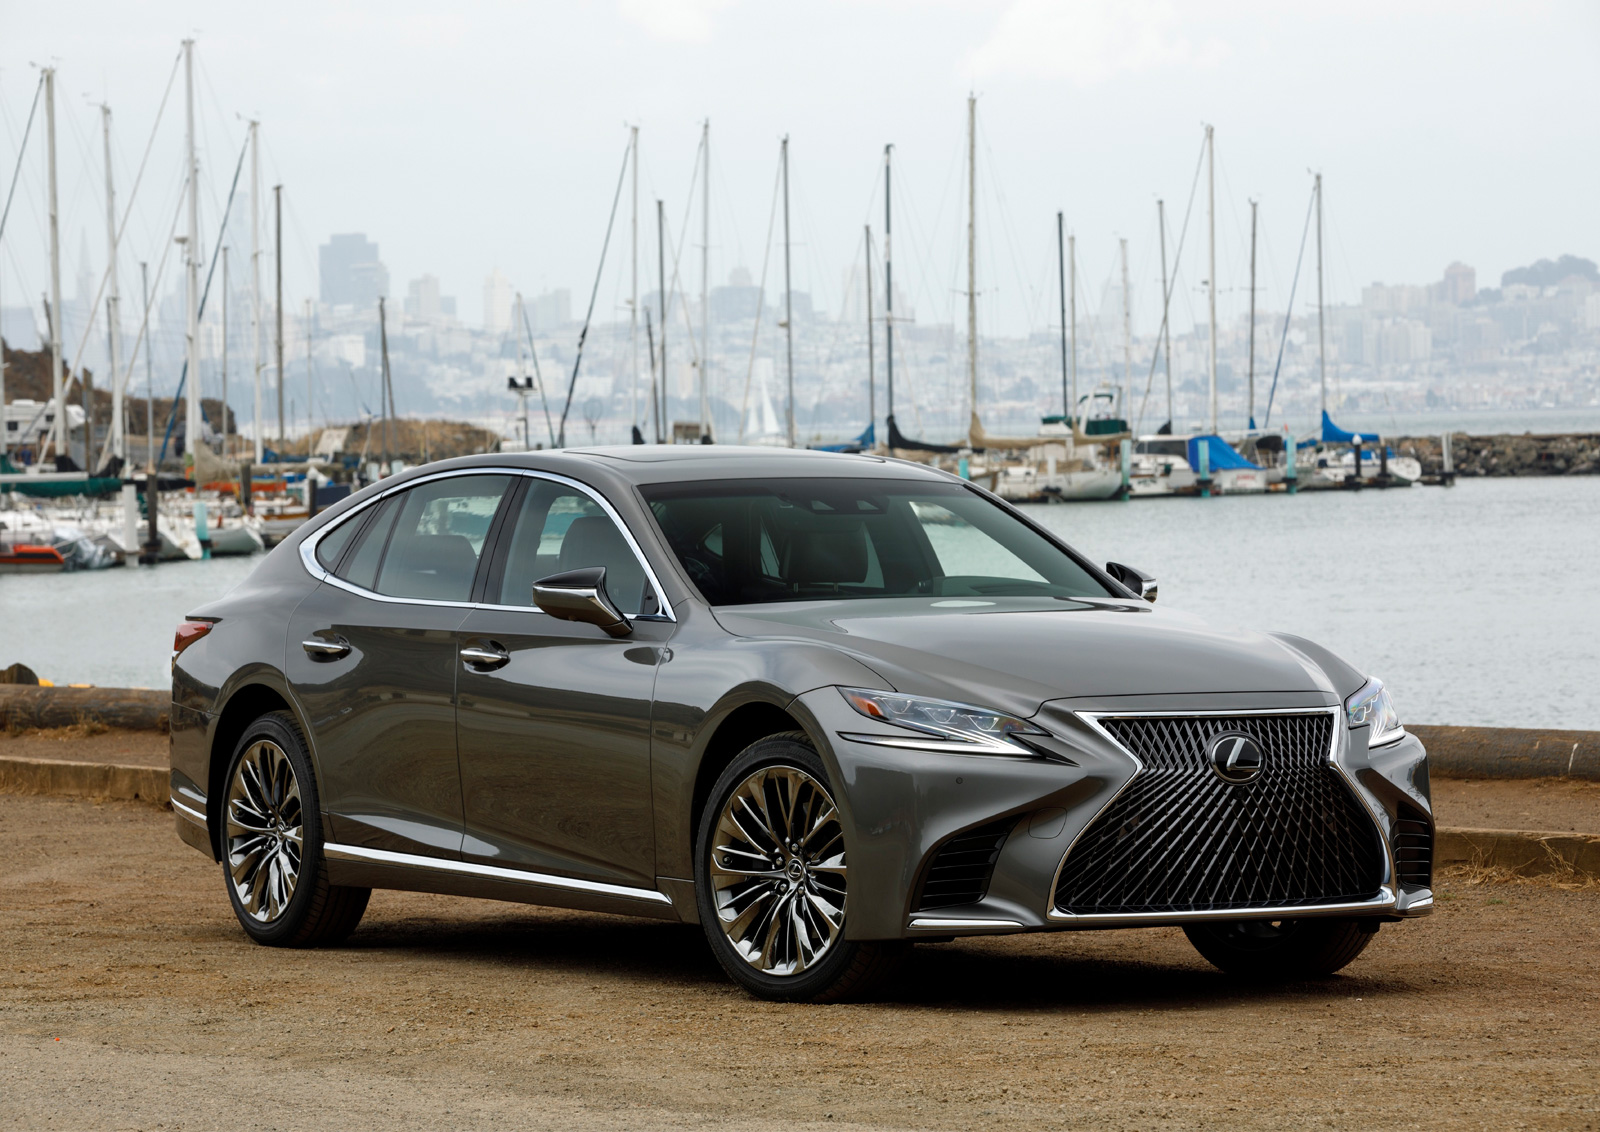 2018 lexus ls 500 pricing remains competitive news. Black Bedroom Furniture Sets. Home Design Ideas